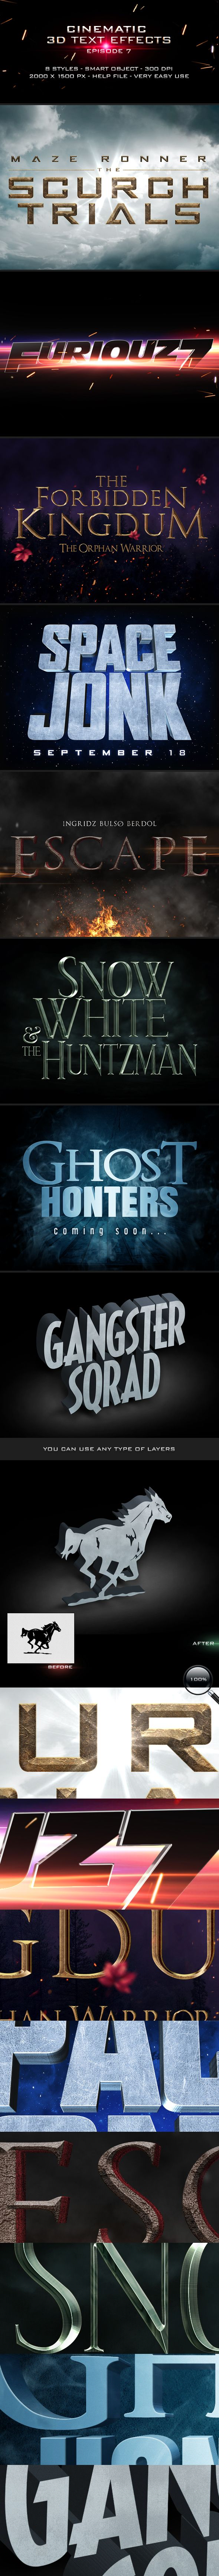 Mysterious poster design with 3d text - Cinematic Title Text Effects Vol 7